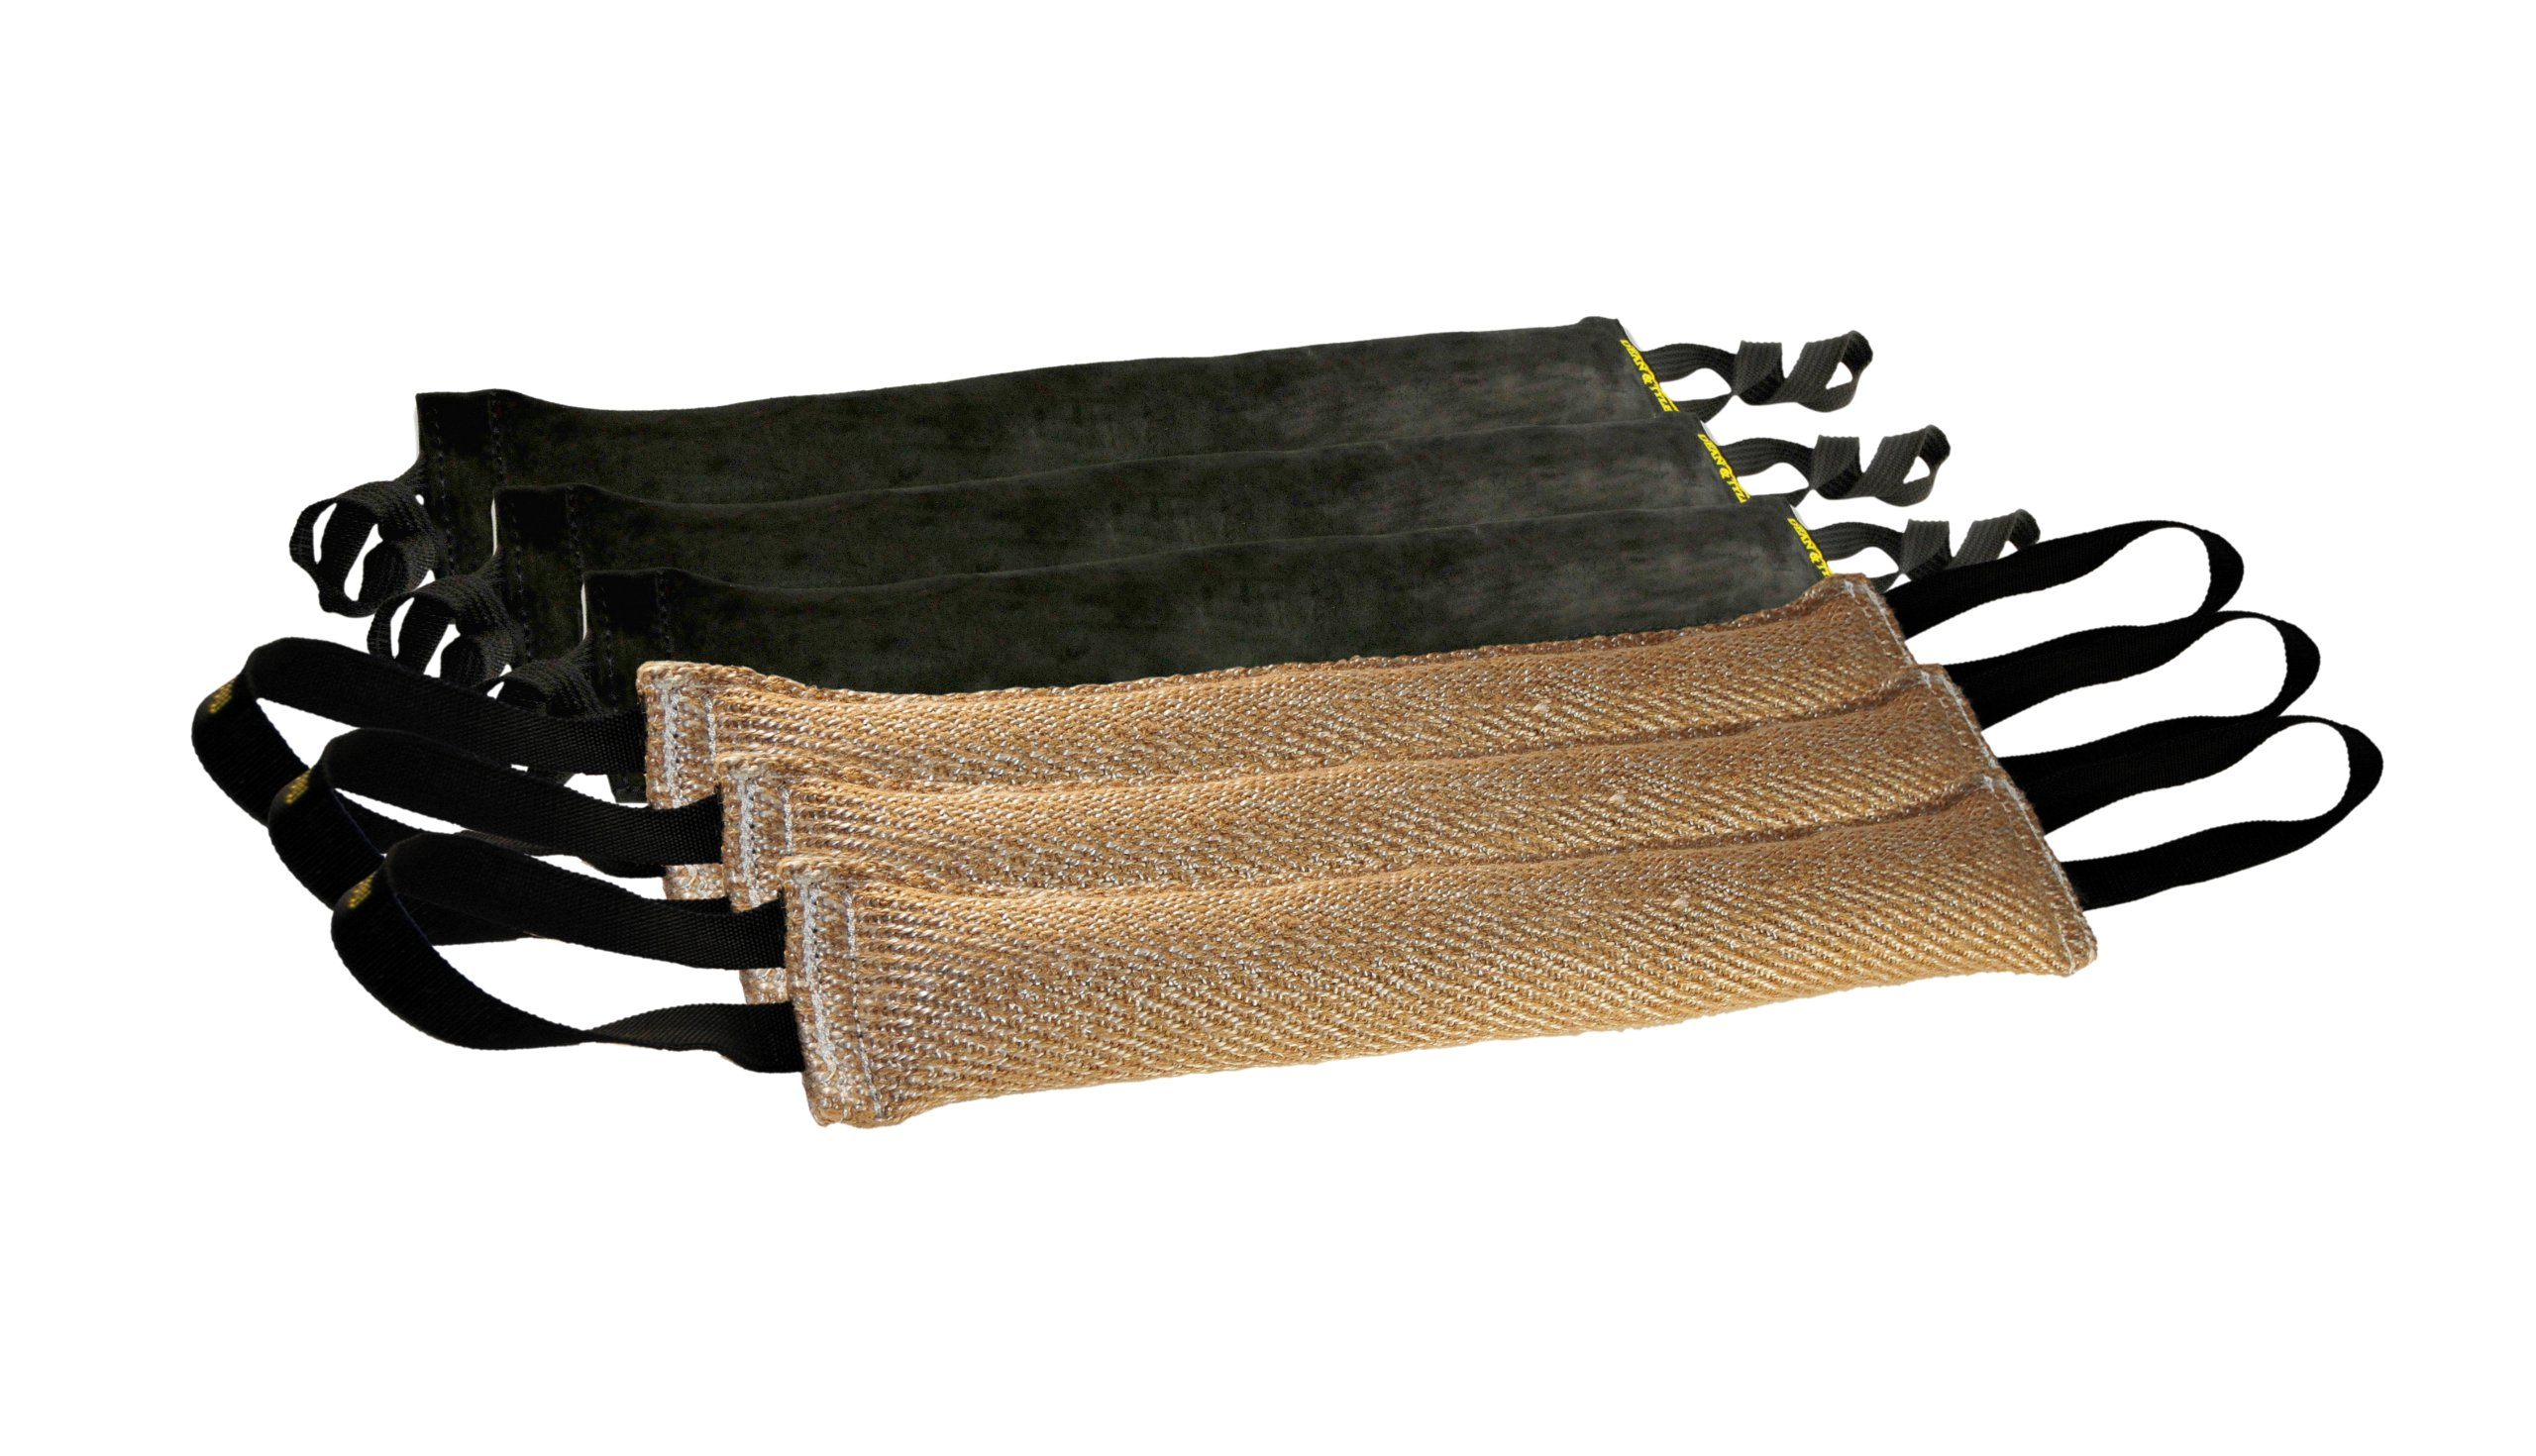 Dean & Tyler Bundle of 6 Tugs for Pets, 3-Jute and 3-Leather, 24-Inch by 4-Inch